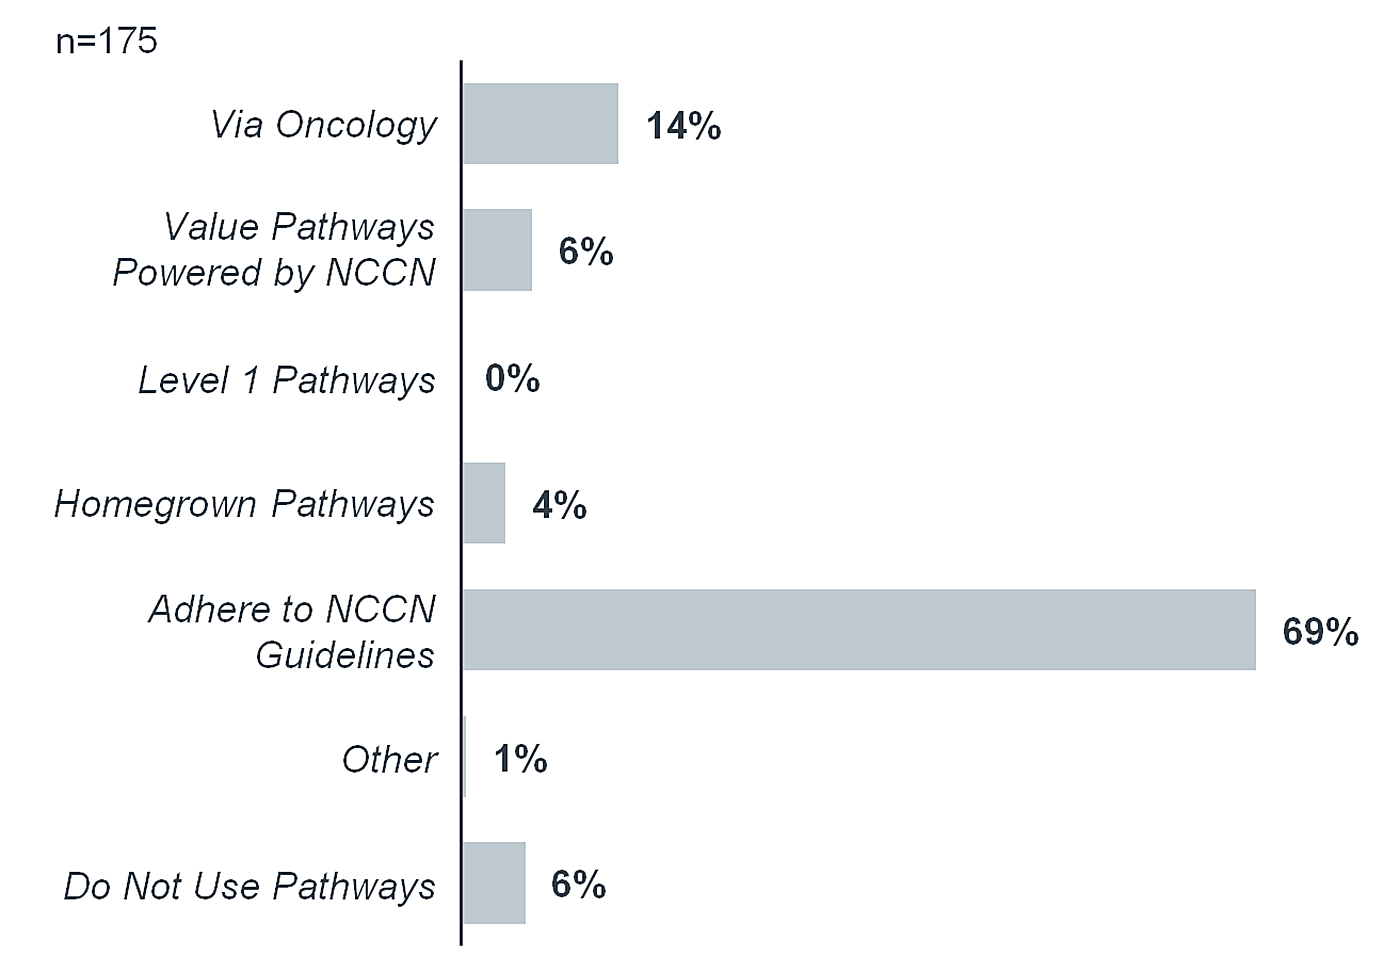 clinical pathways used by radiation therapy facilities